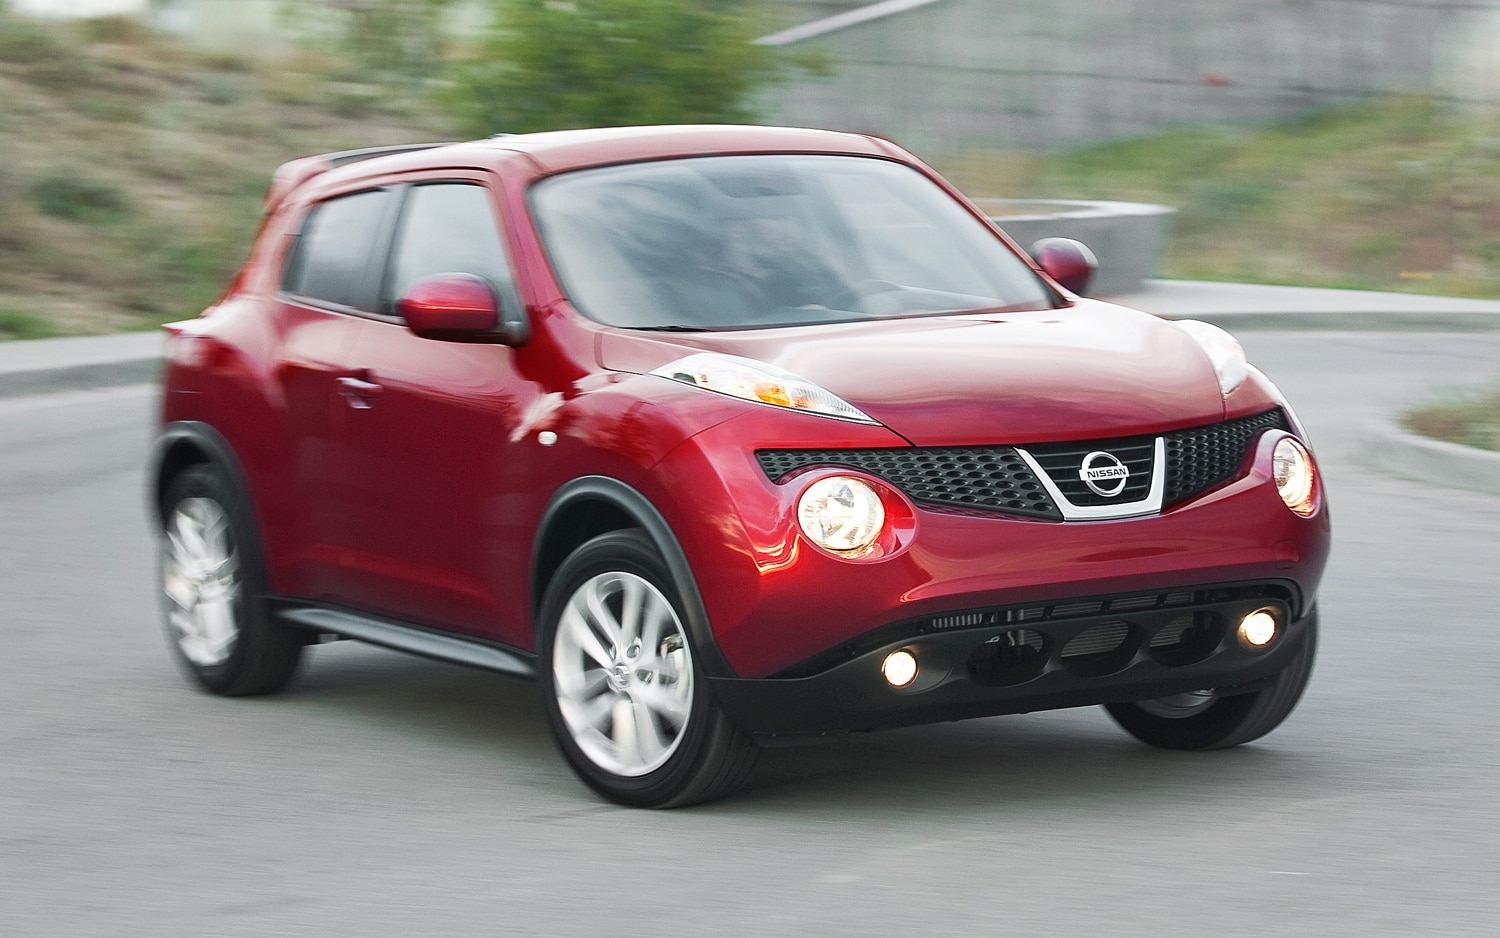 Nissan Recalling 2011 Juke due to Turbo Trouble